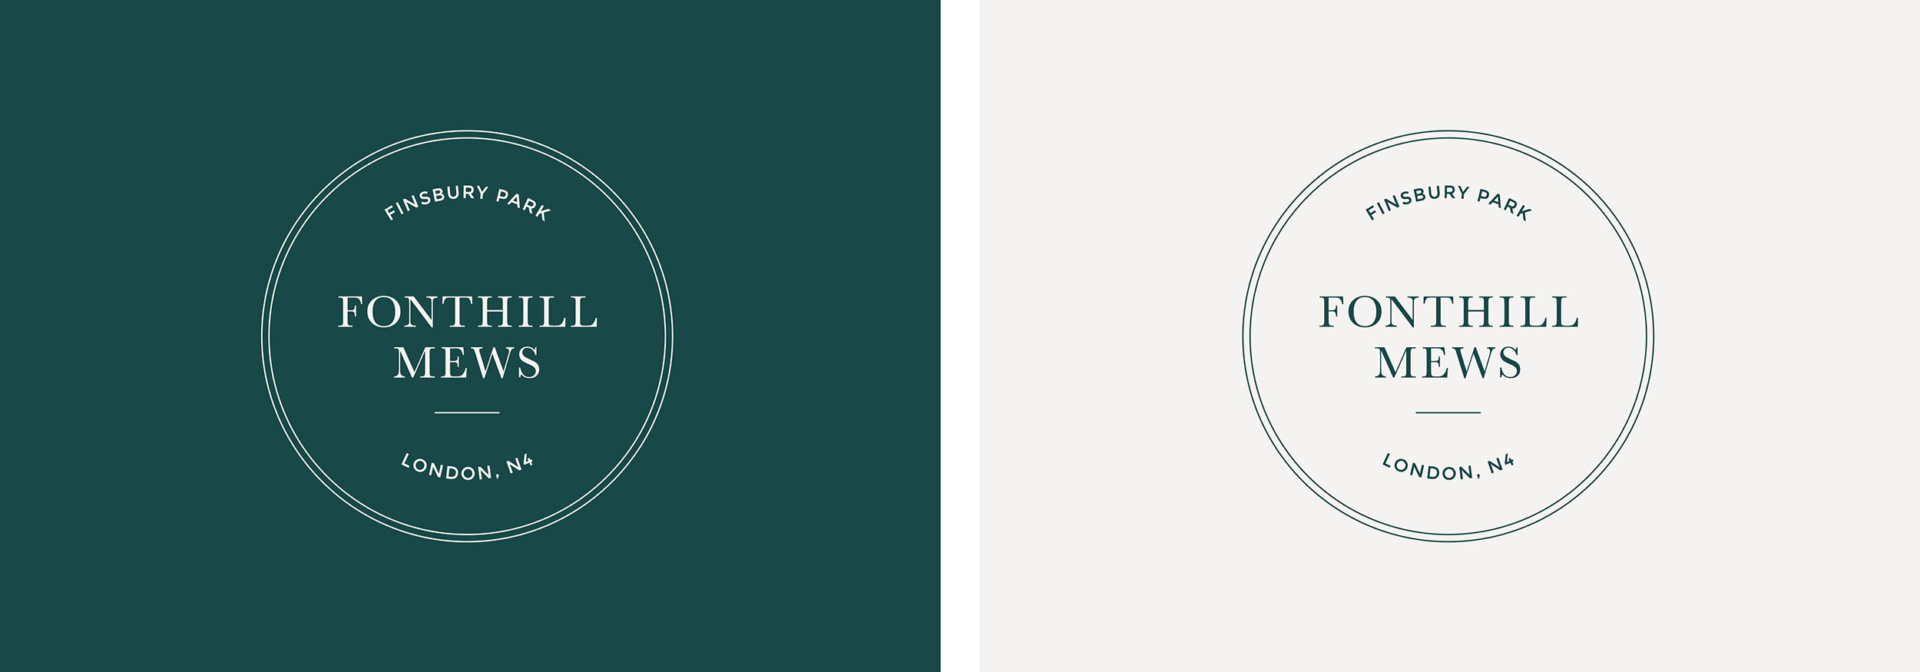 Two logo designs for Fonthill Mews, Finsbury Park properties. Graphic design by Barefaced Studios, design agency based in Islington, North London.